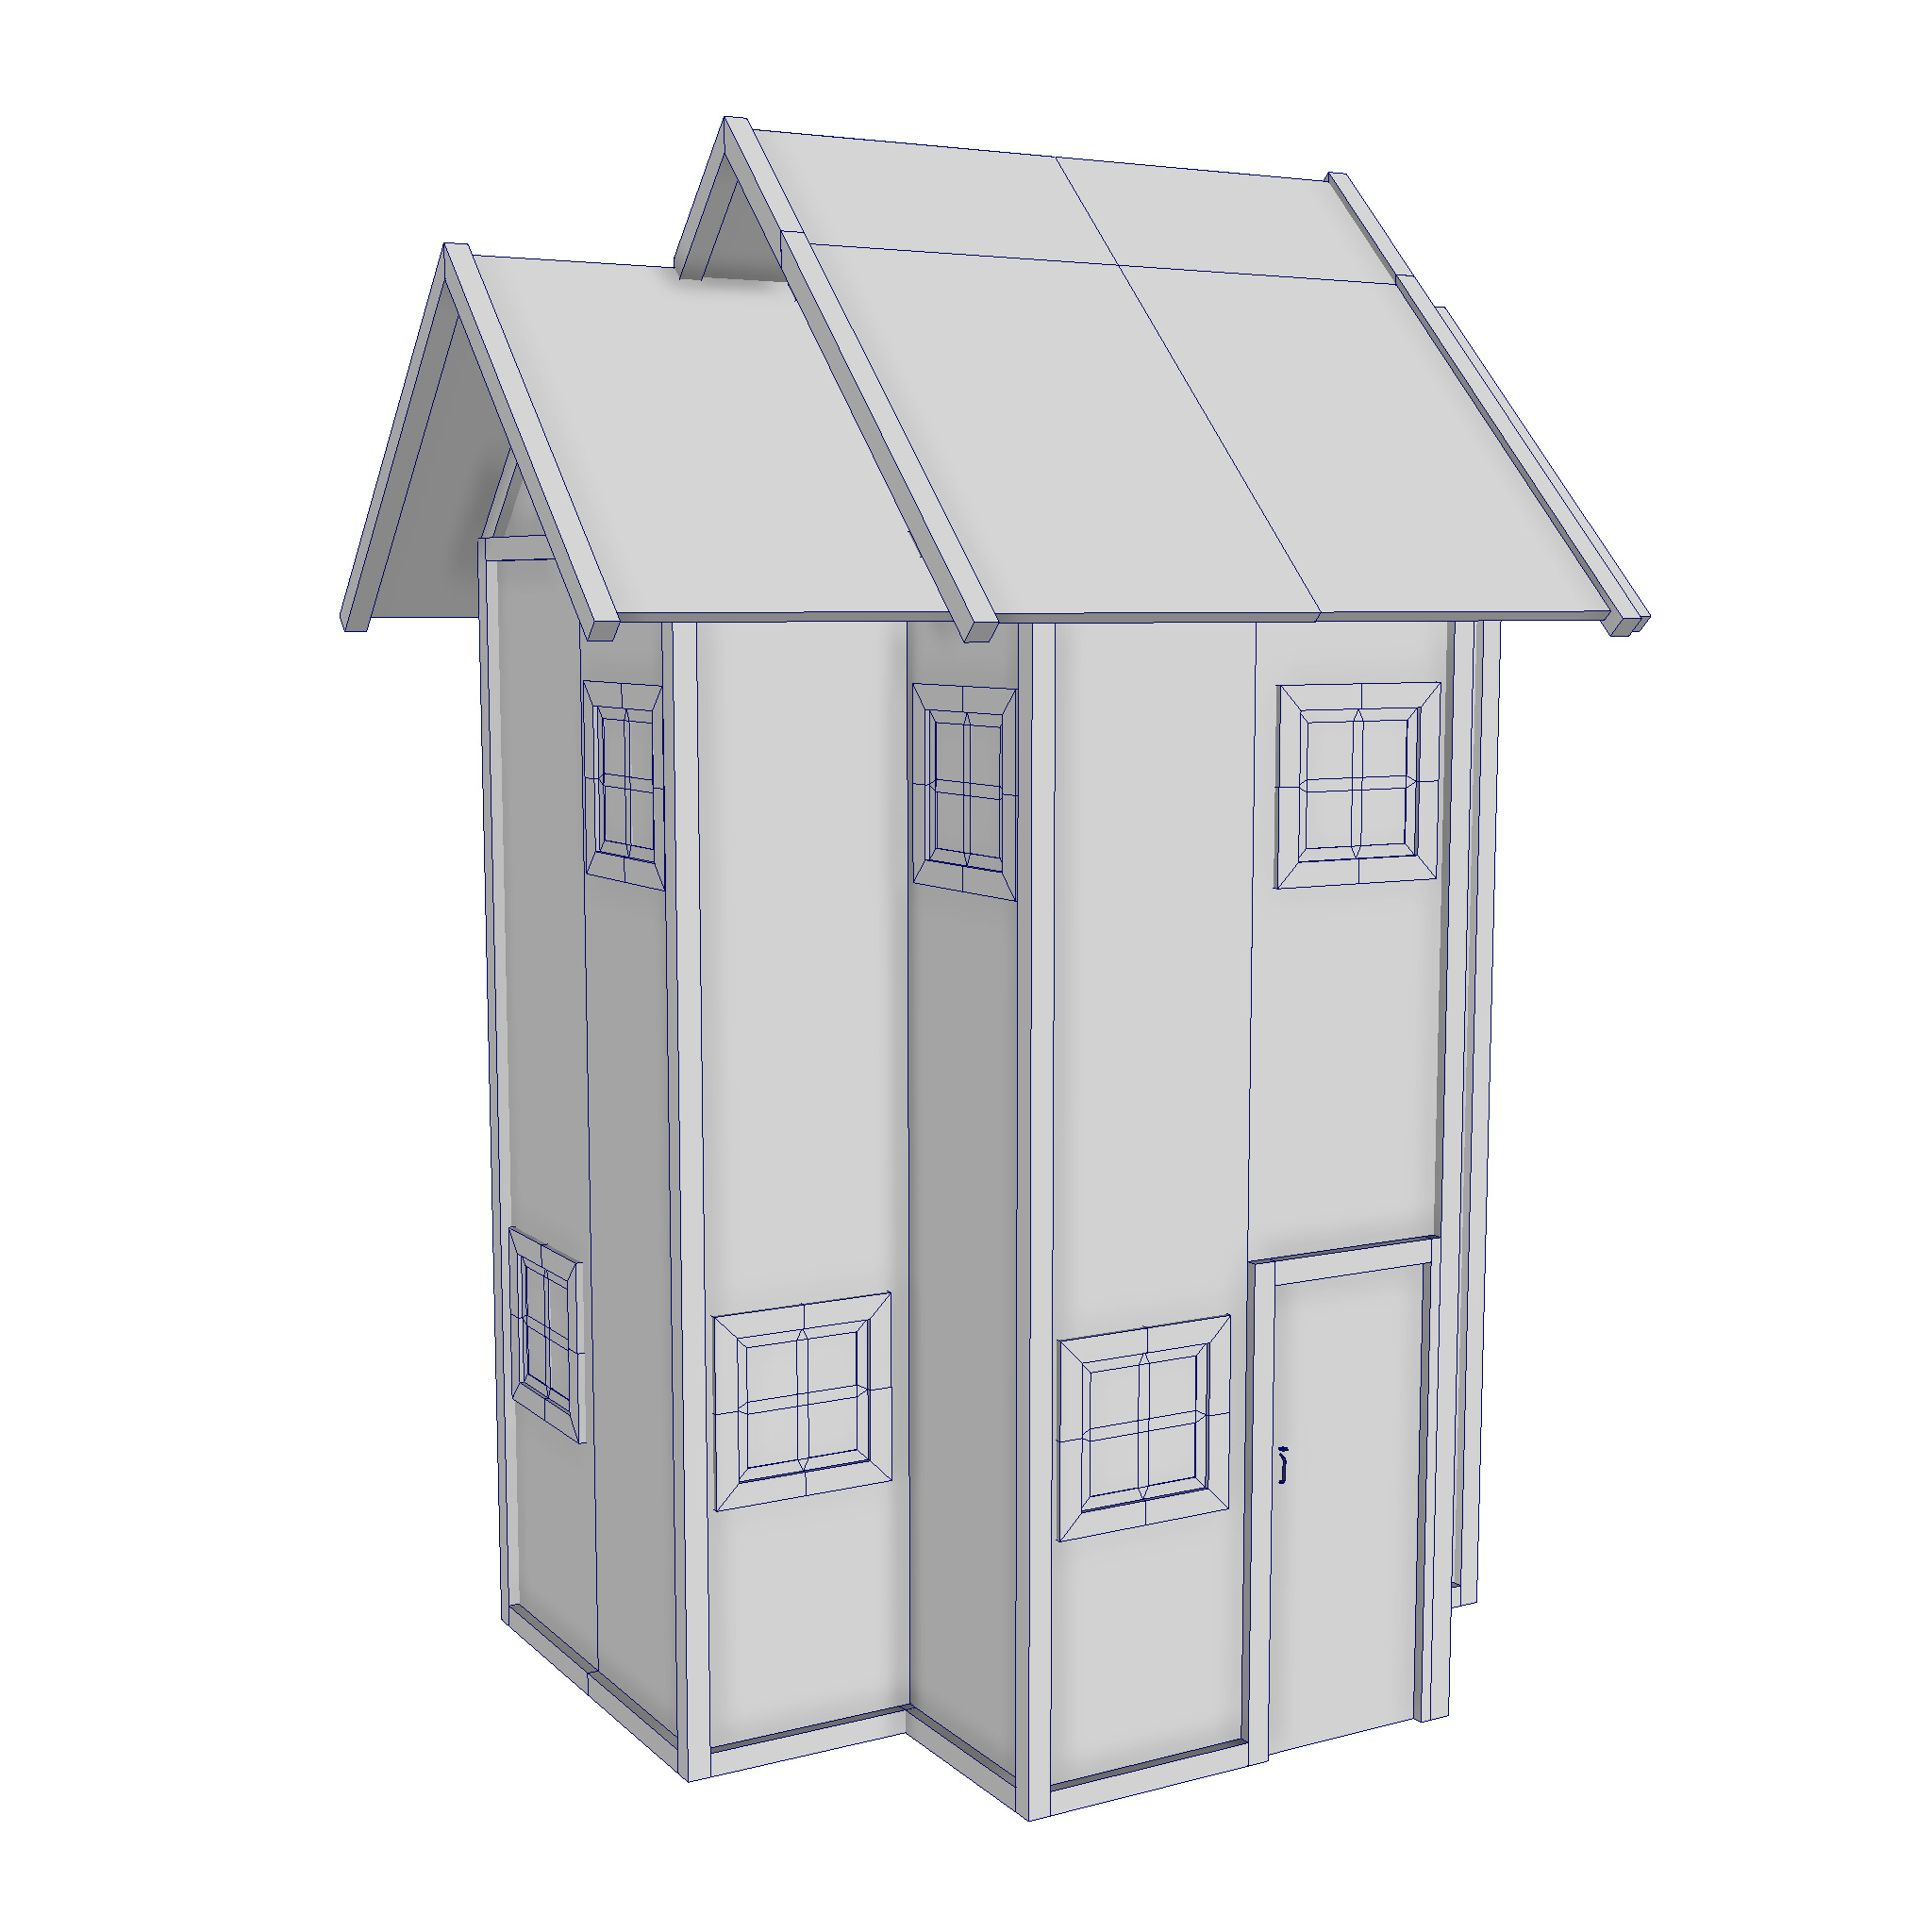 modular wood house set 3d model fbx ma mb 271444